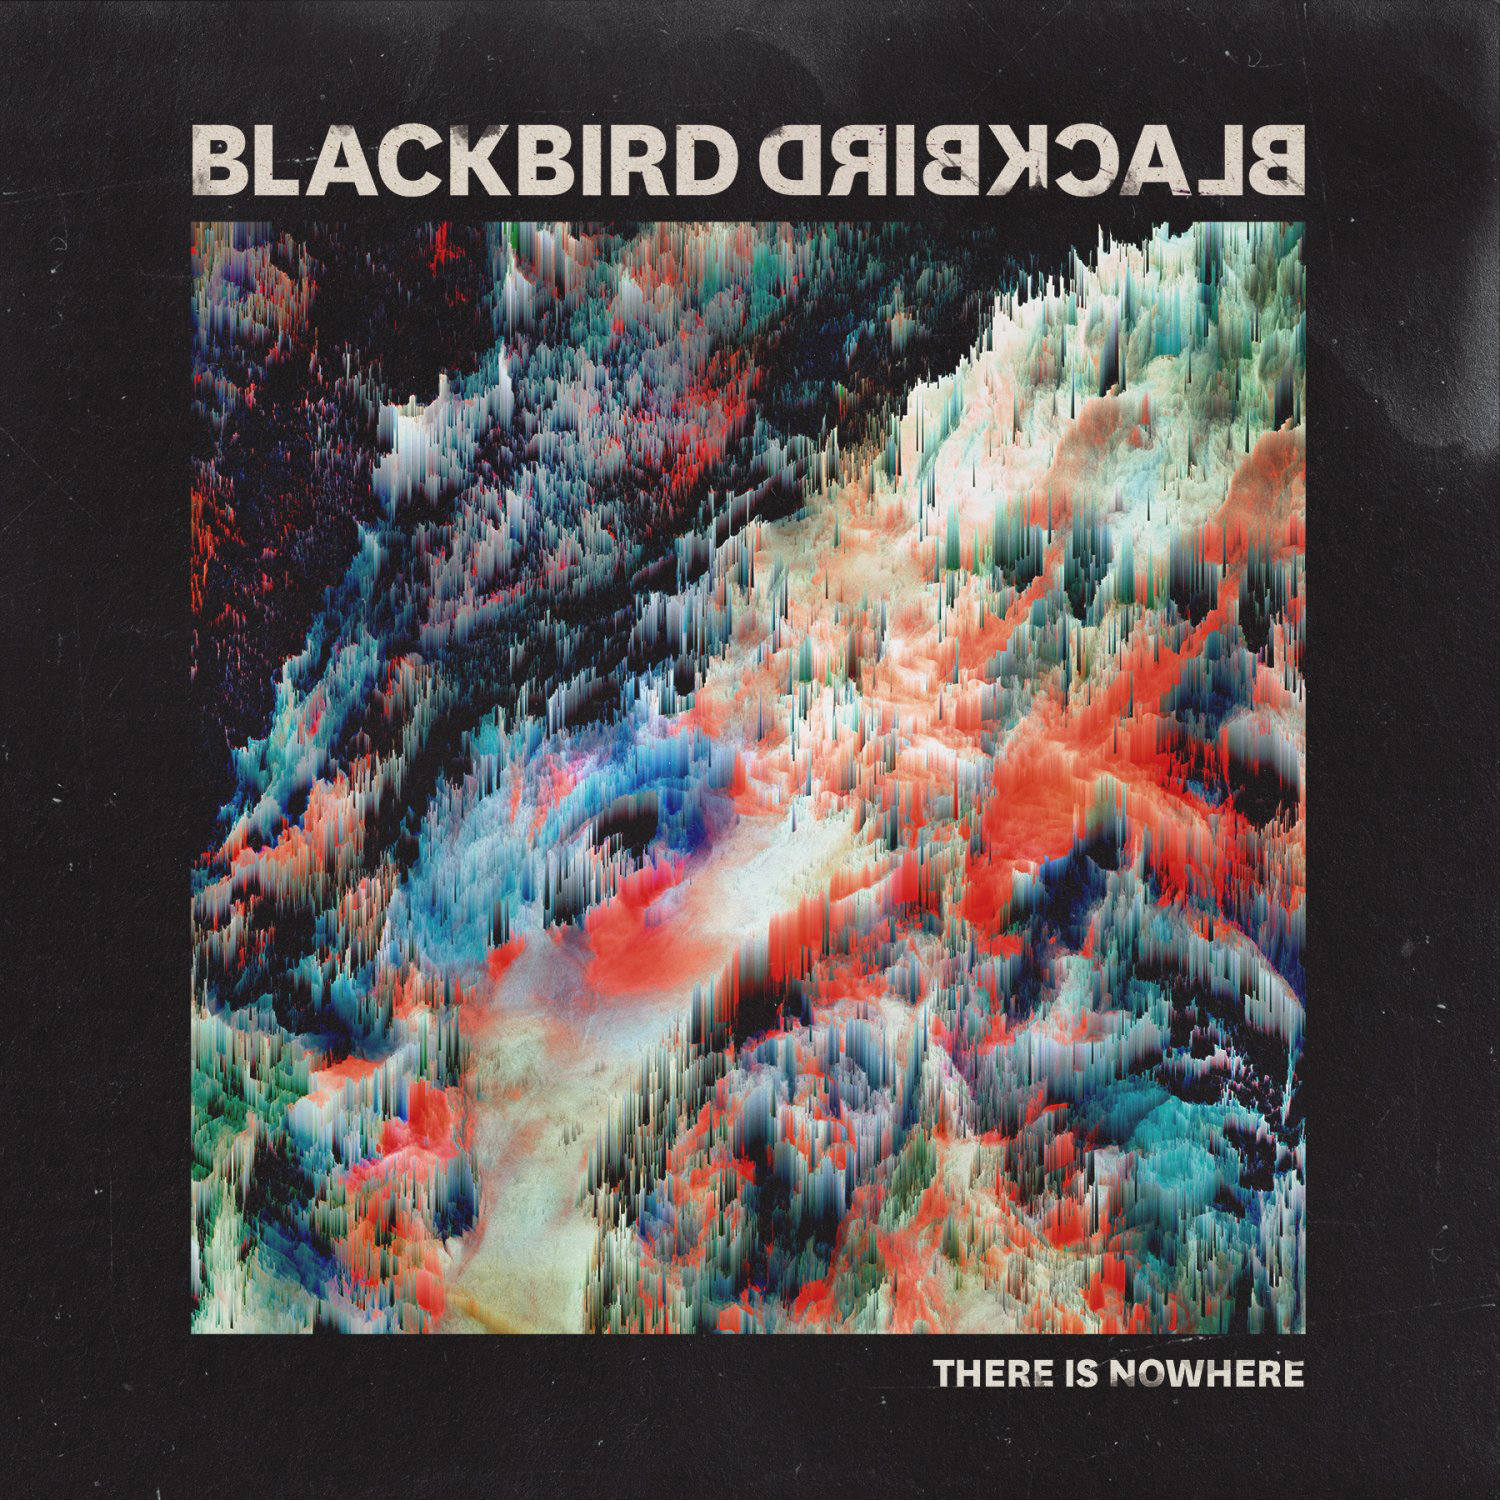 Blackbird Blackbird - There Is Nowhere (Single)